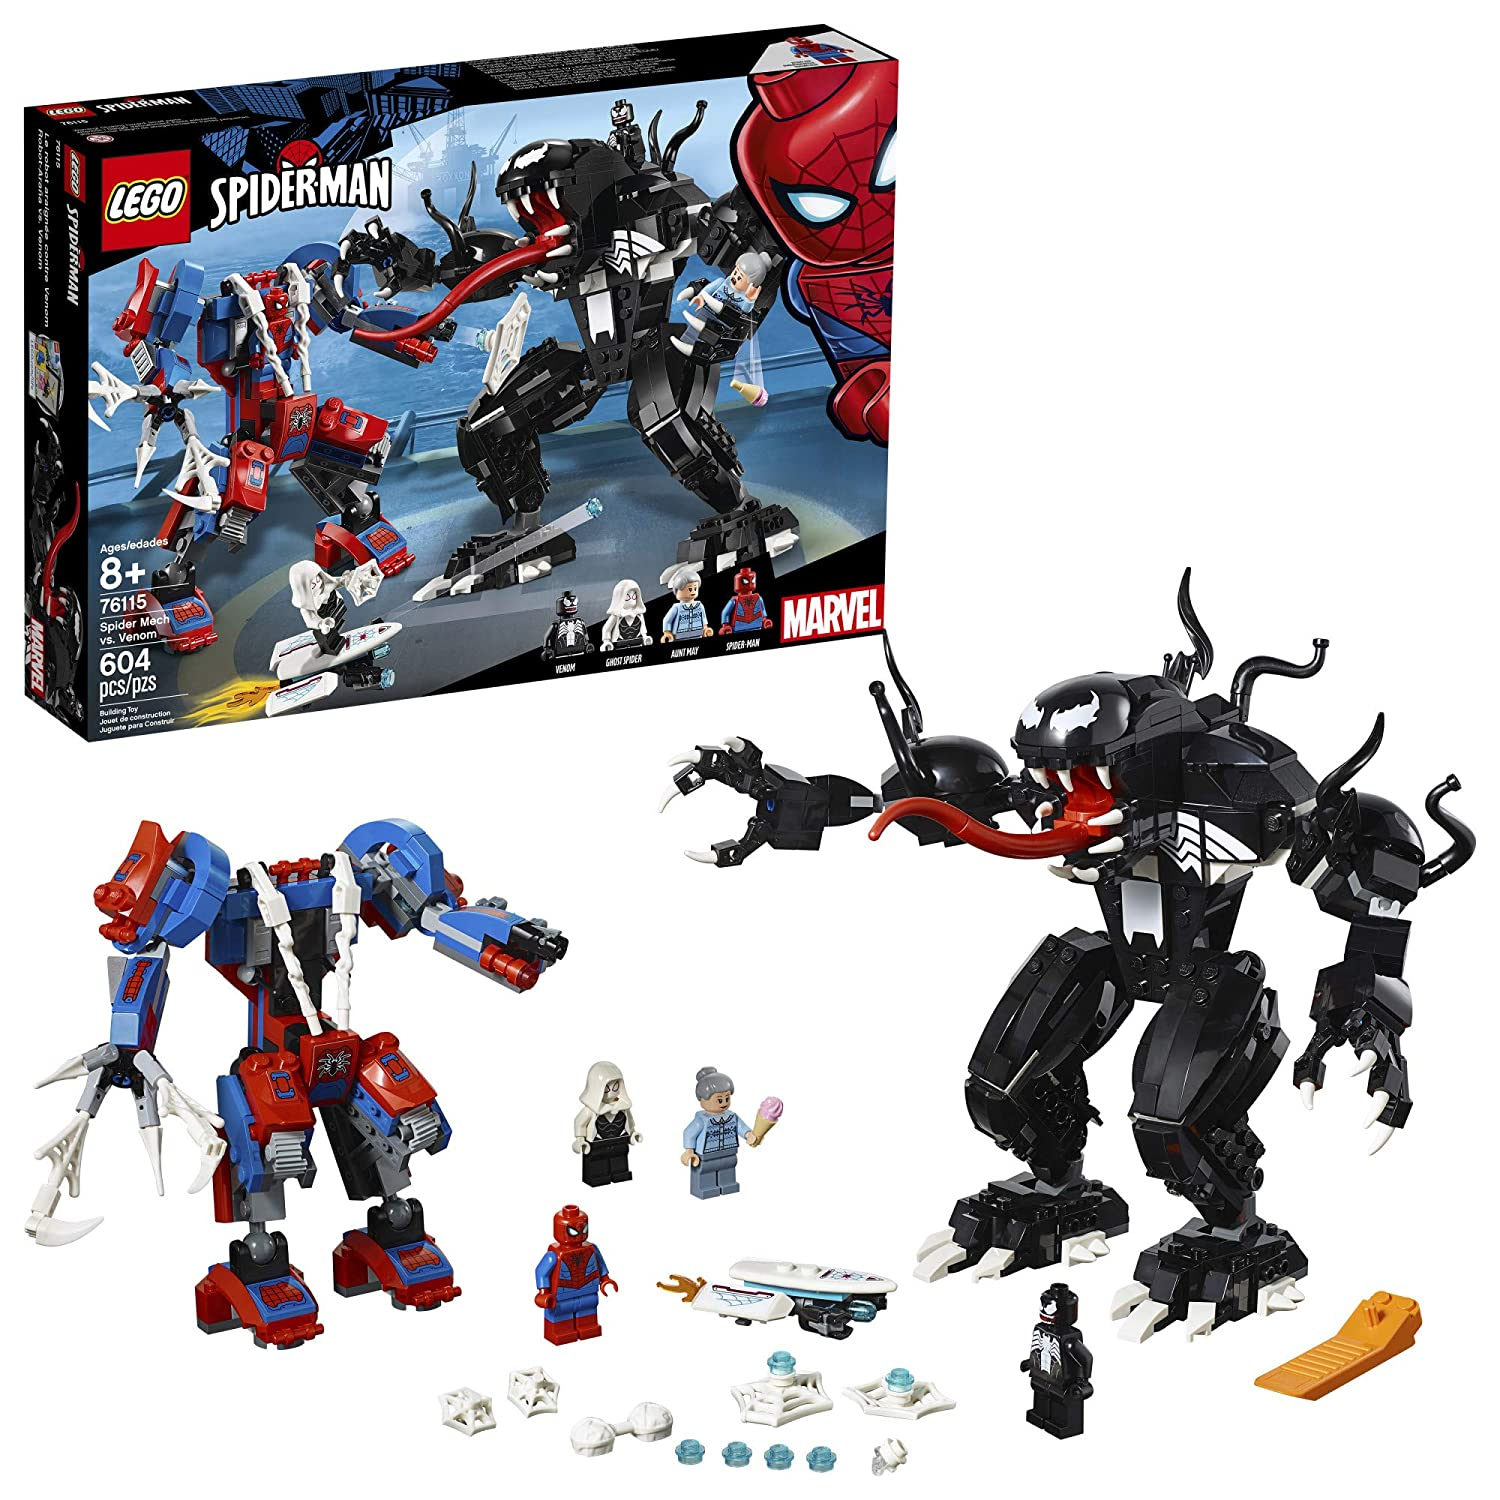 LEGO Marvel Spider-Man: Spider Mech vs. Venom 76115 Building Kit (604 Piece) LEGO Superheroes 6251077